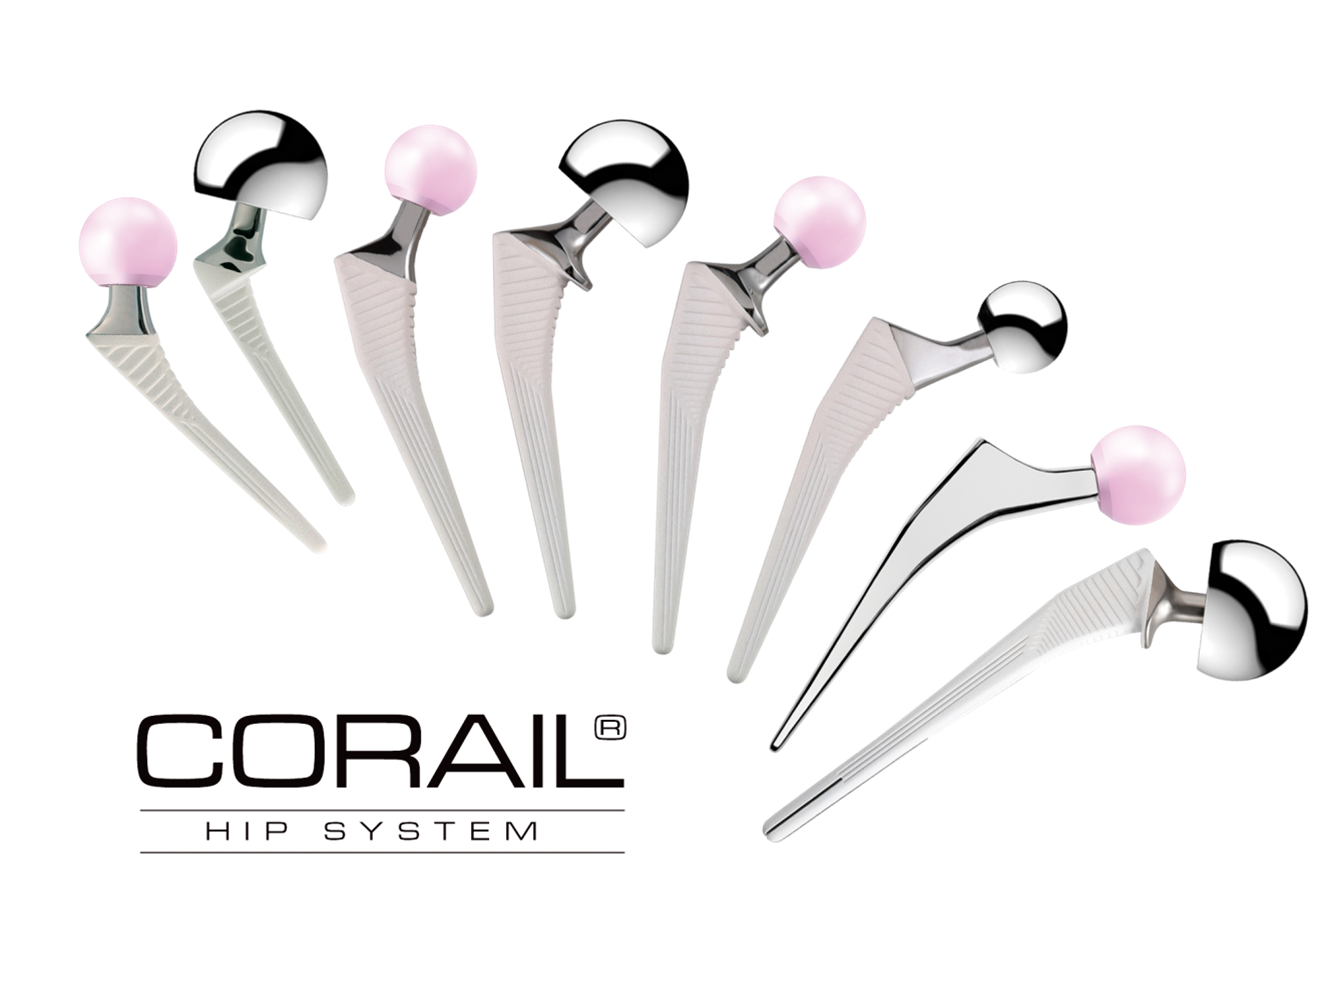 Corail Hip System